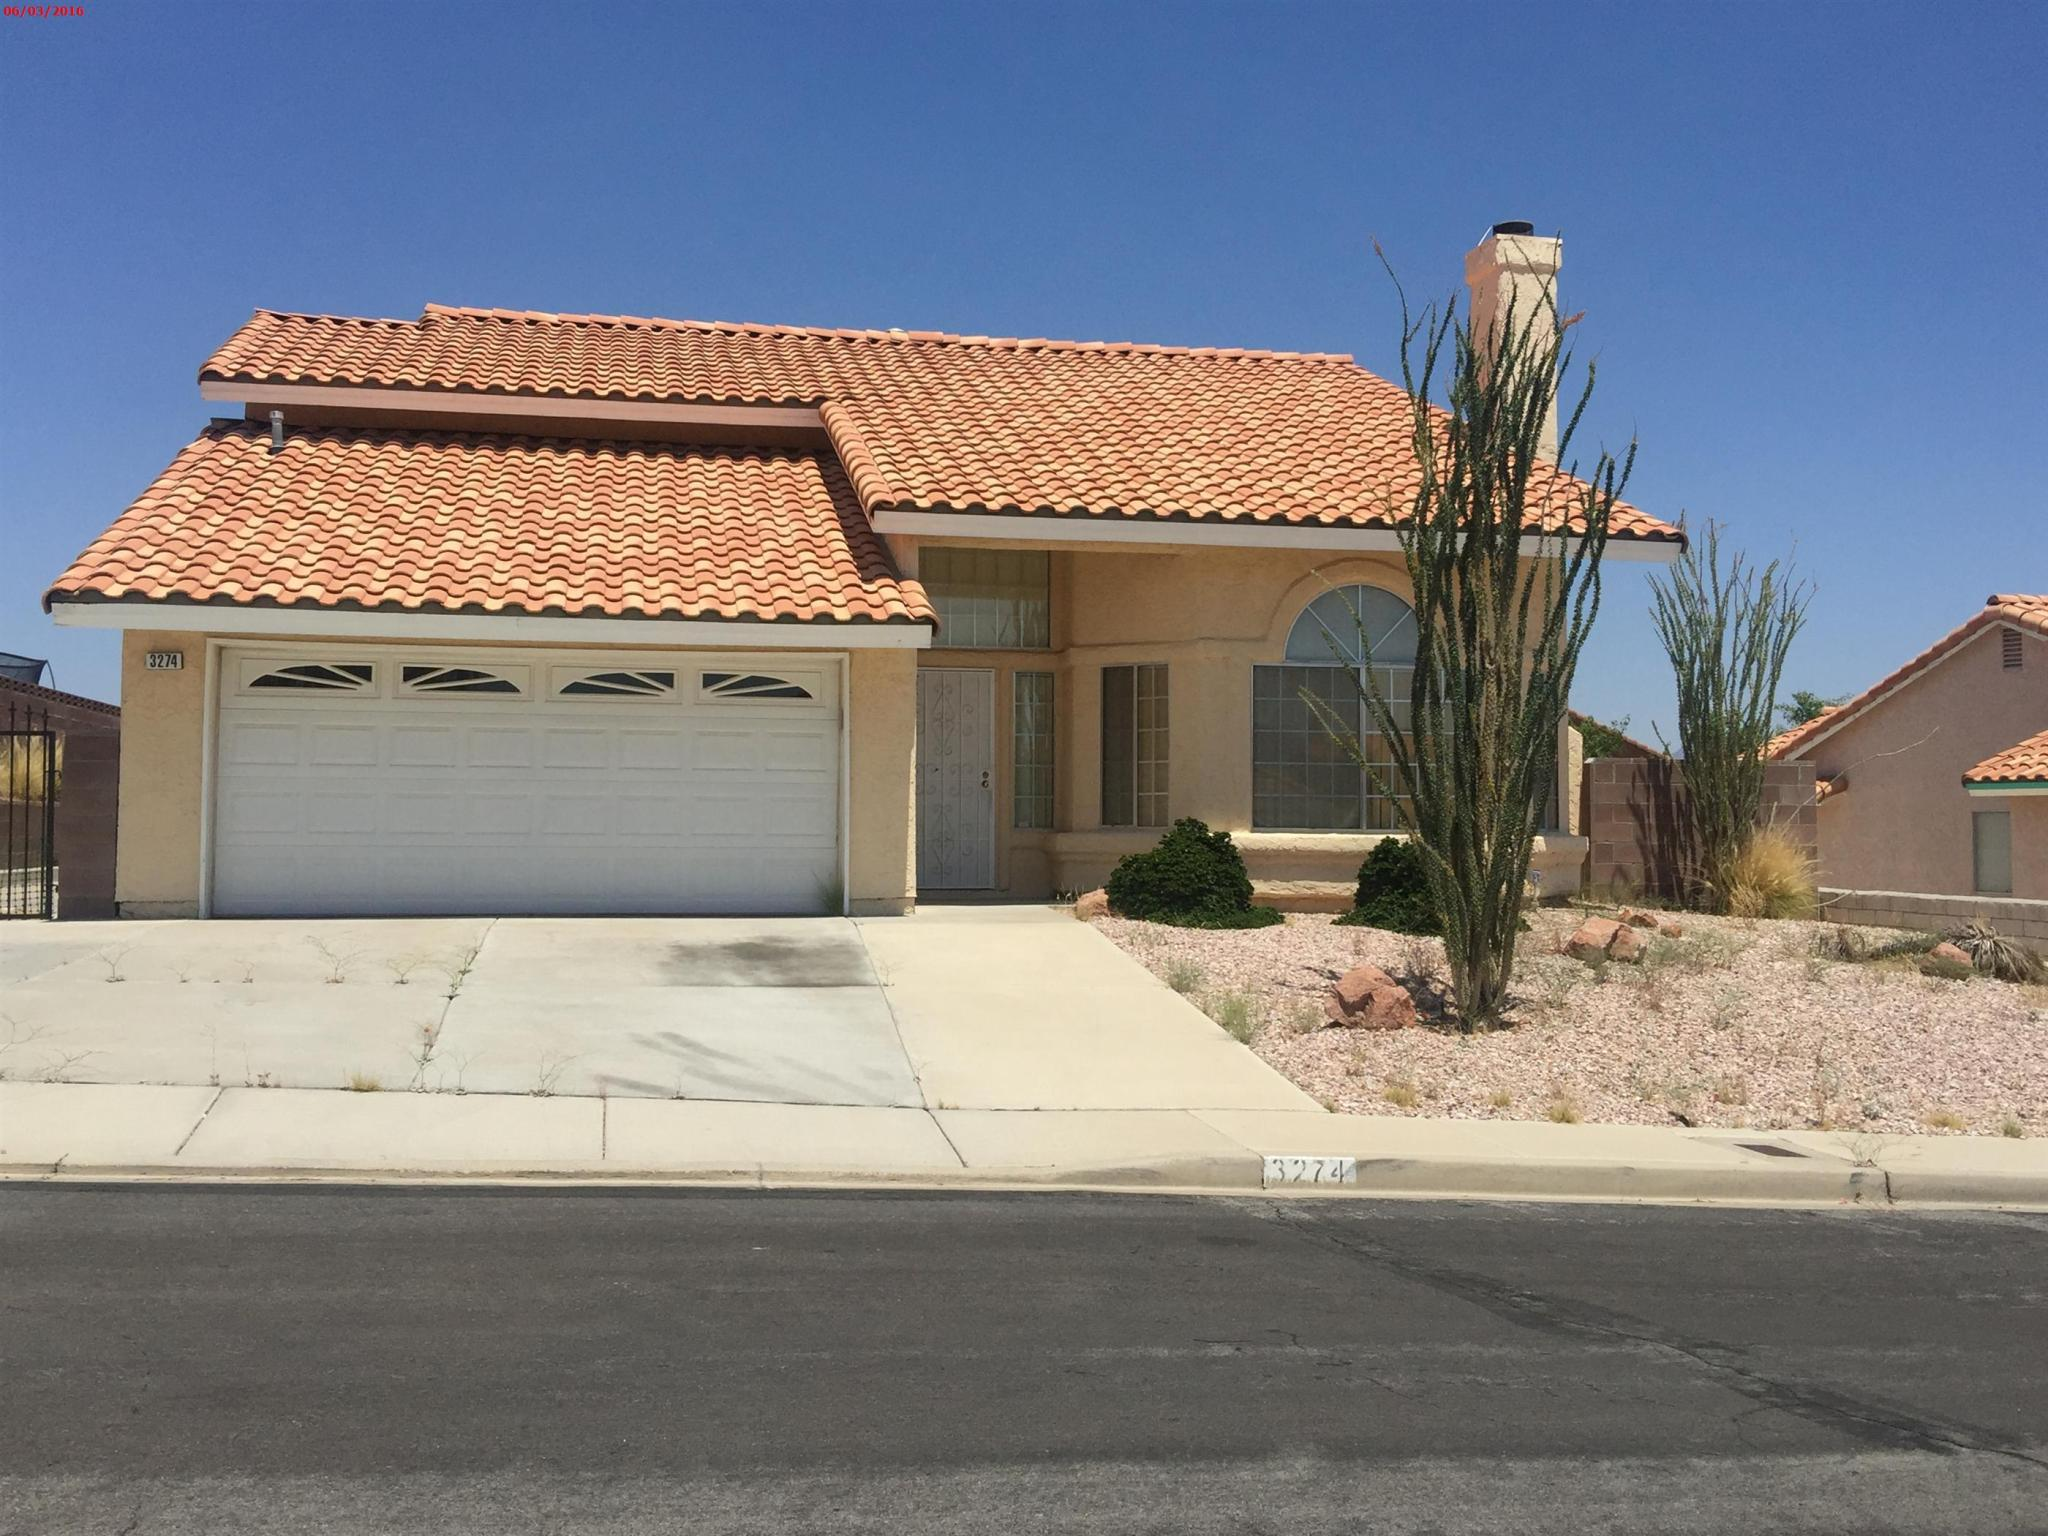 3274 cactus springs dr laughlin nv recently sold